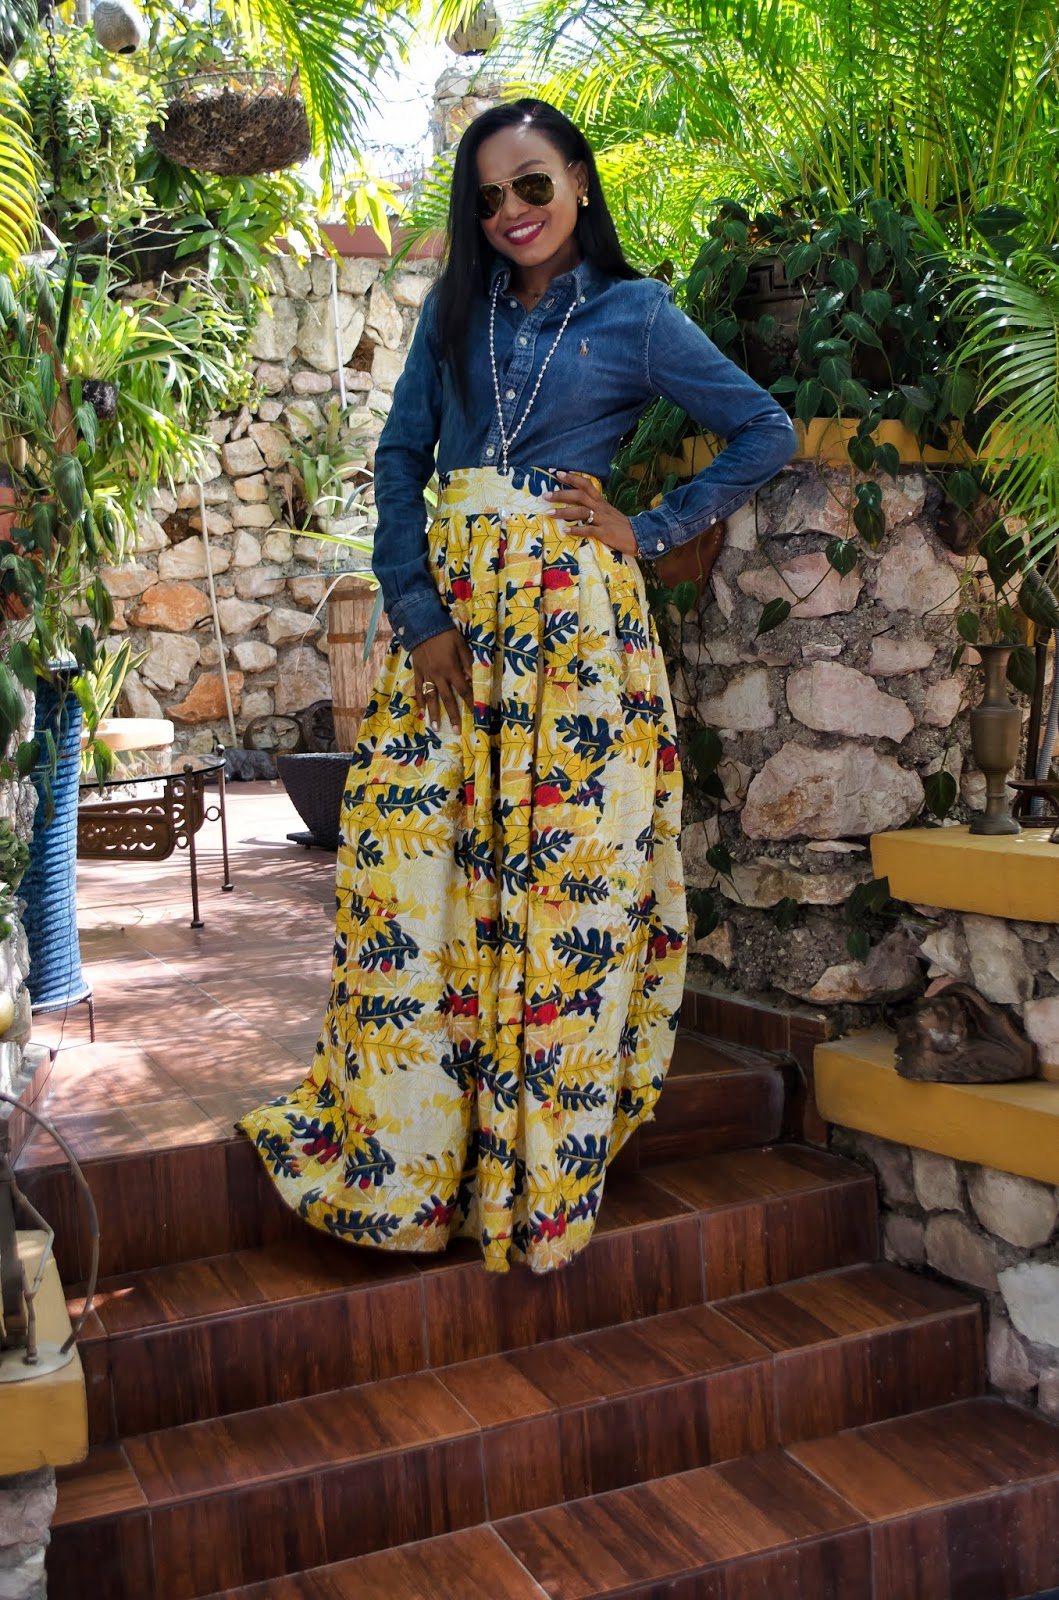 Fashion blogger Iris from La MouMous in denim shirt and long floral skirt